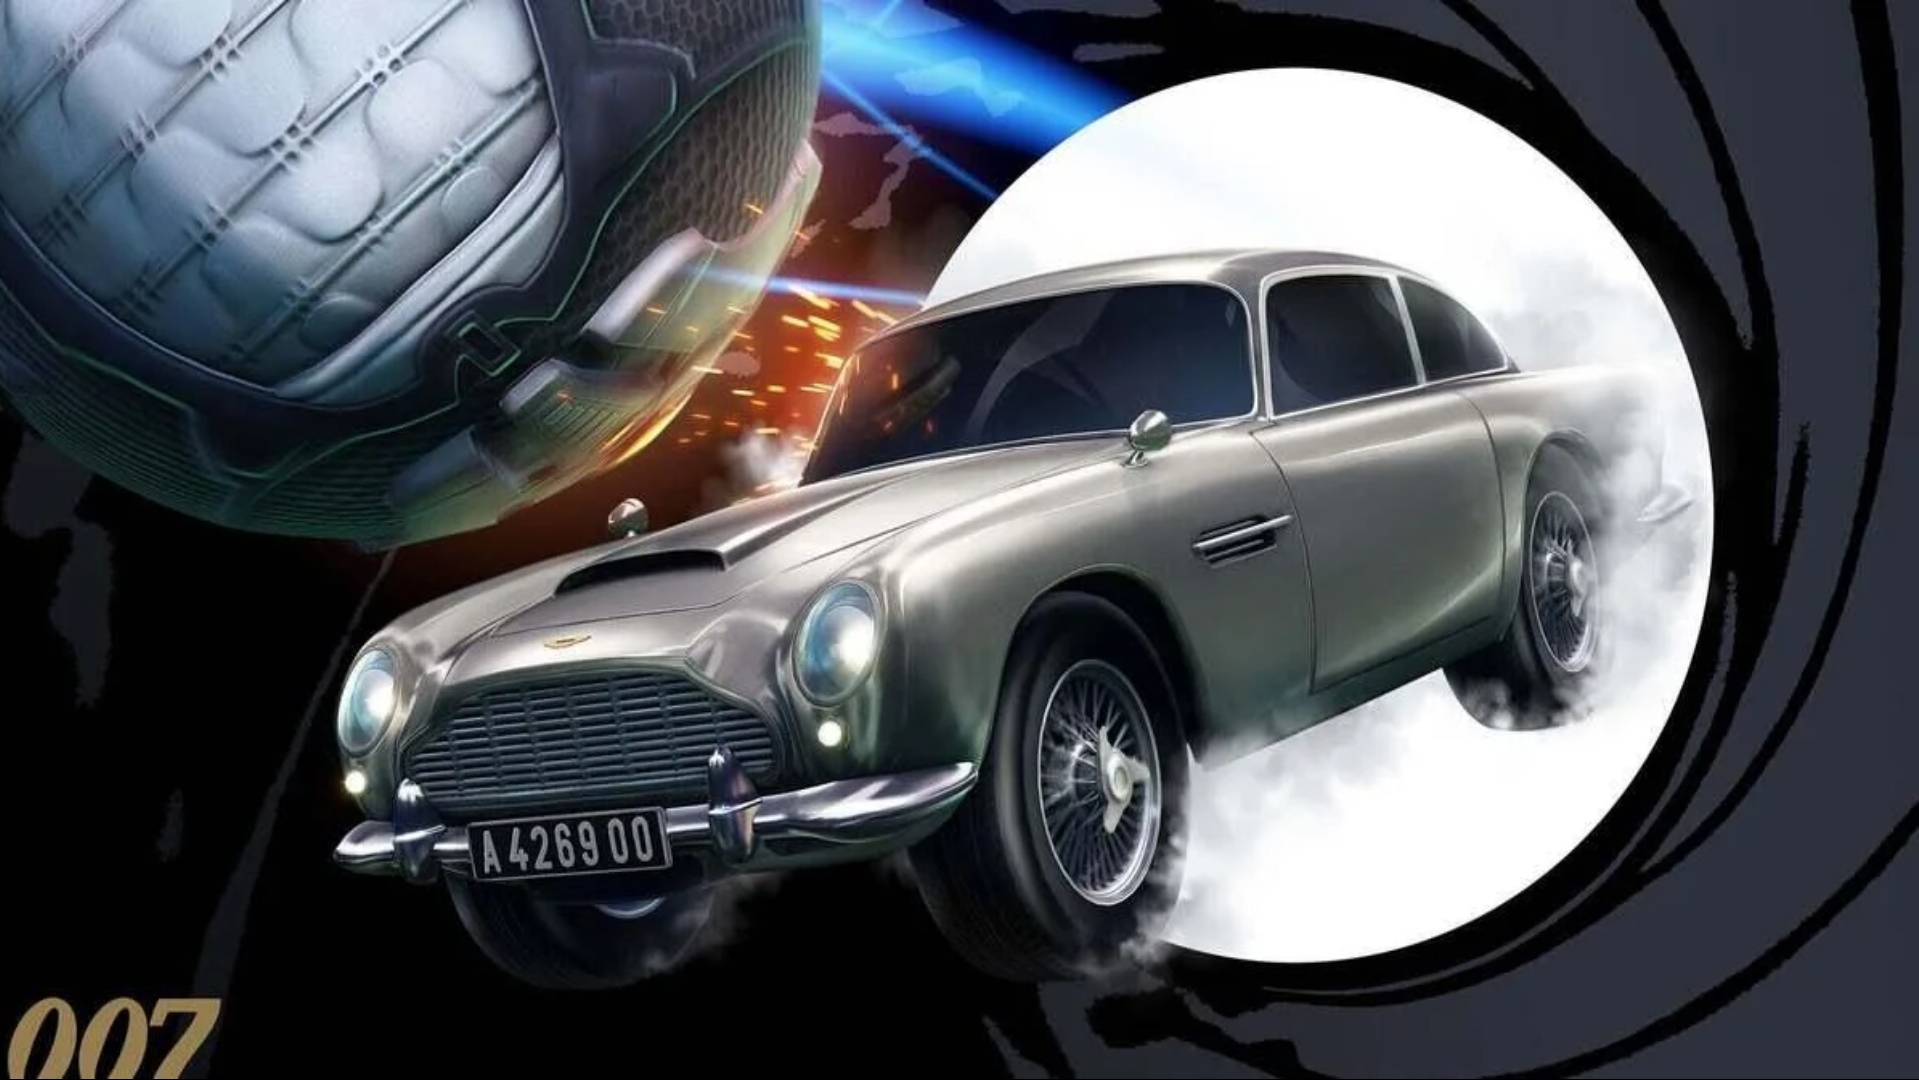 The 007 Aston Martin Is Coming To Rocket League!